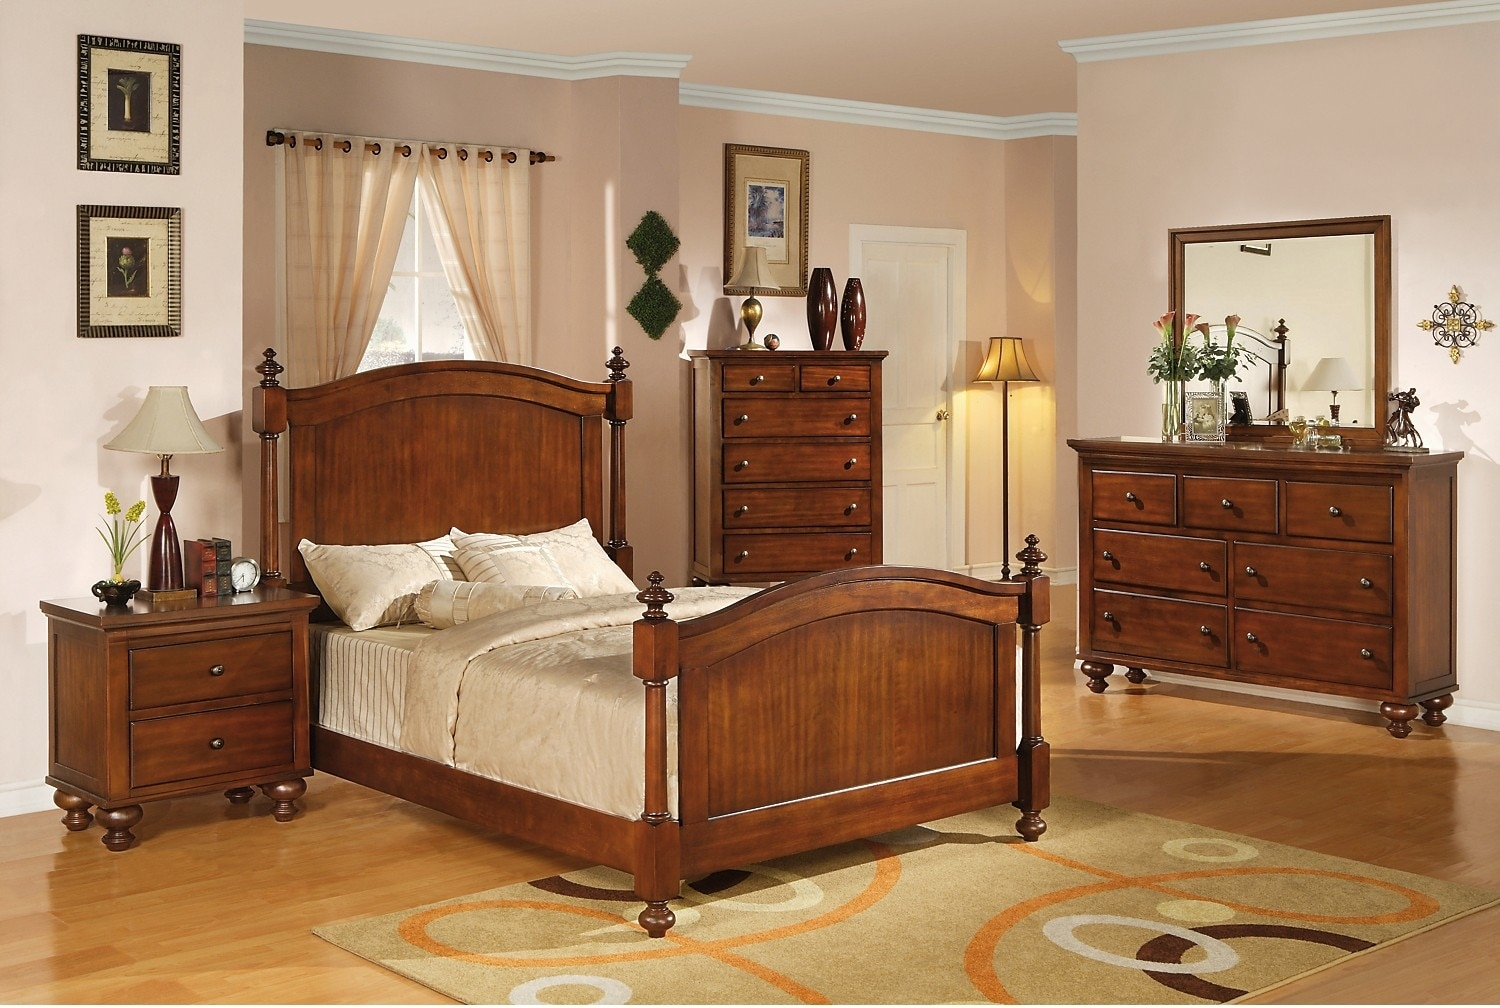 Bedroom Furniture - Kennedy 8-Piece King Bedroom Package - Cherry